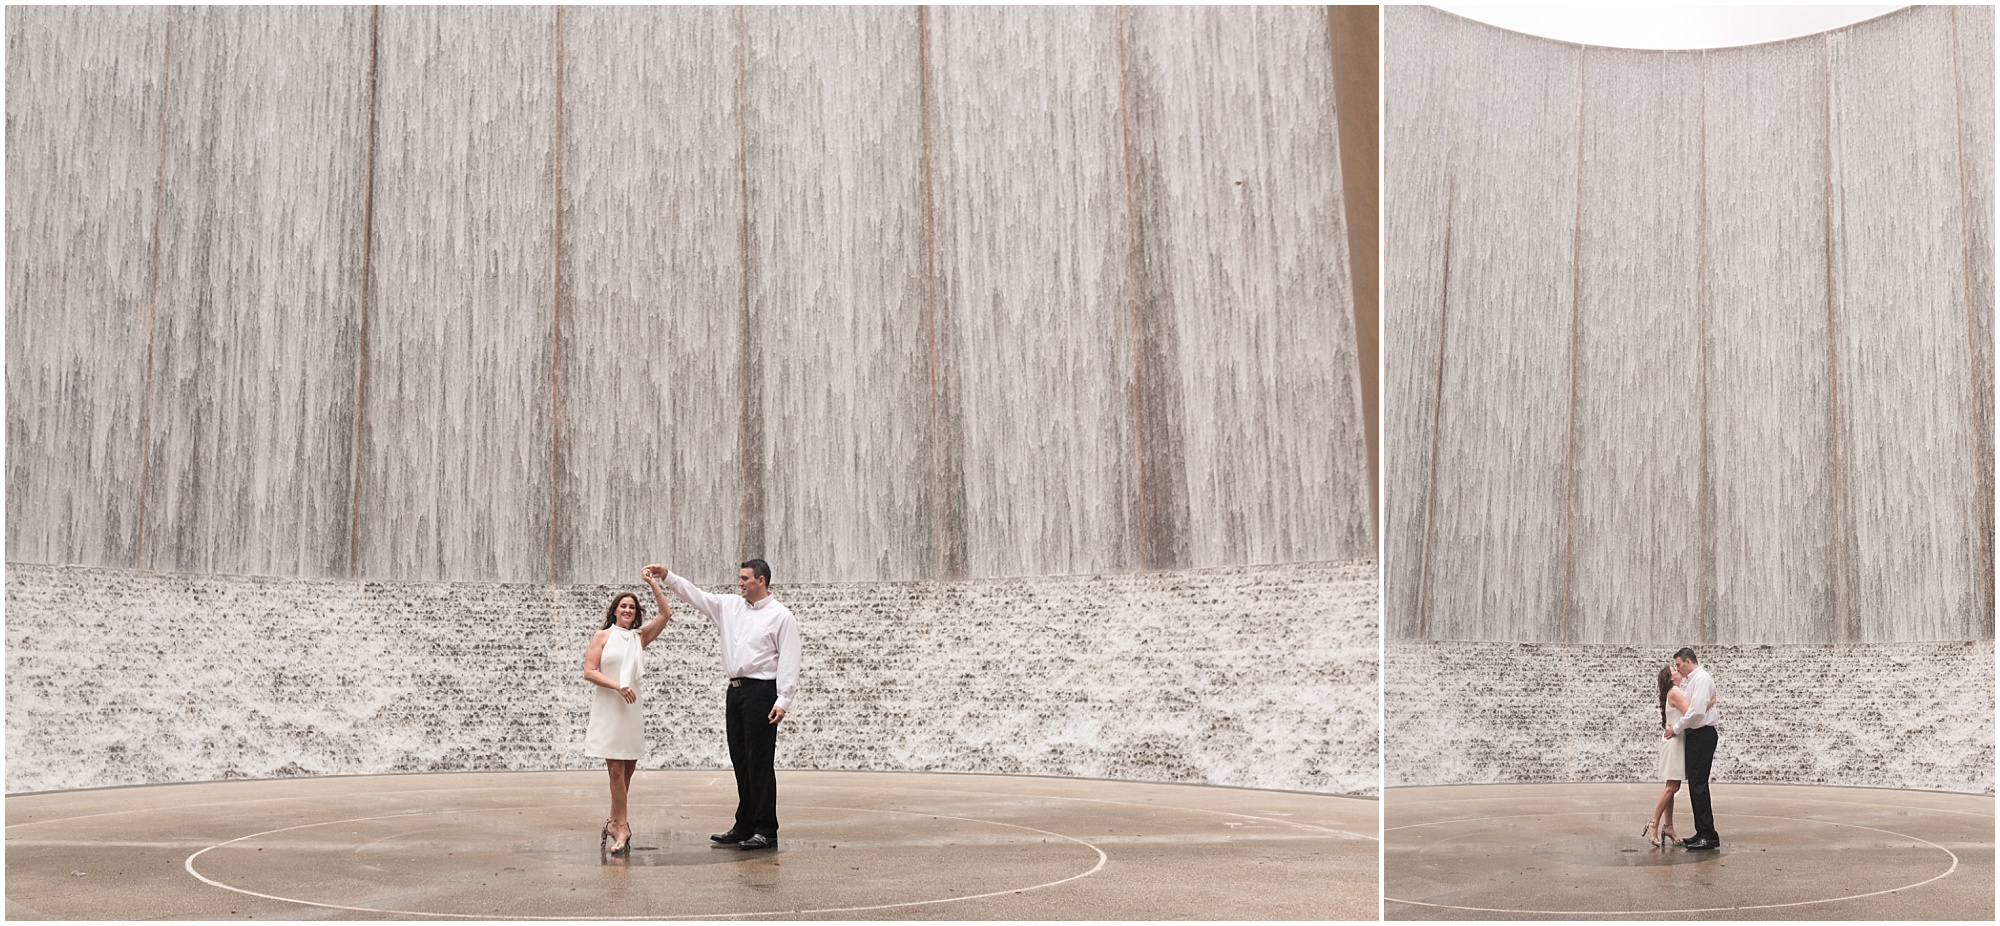 romantic engagement session at the water wall in Houston, Texas photographed by Swish and Click Photography